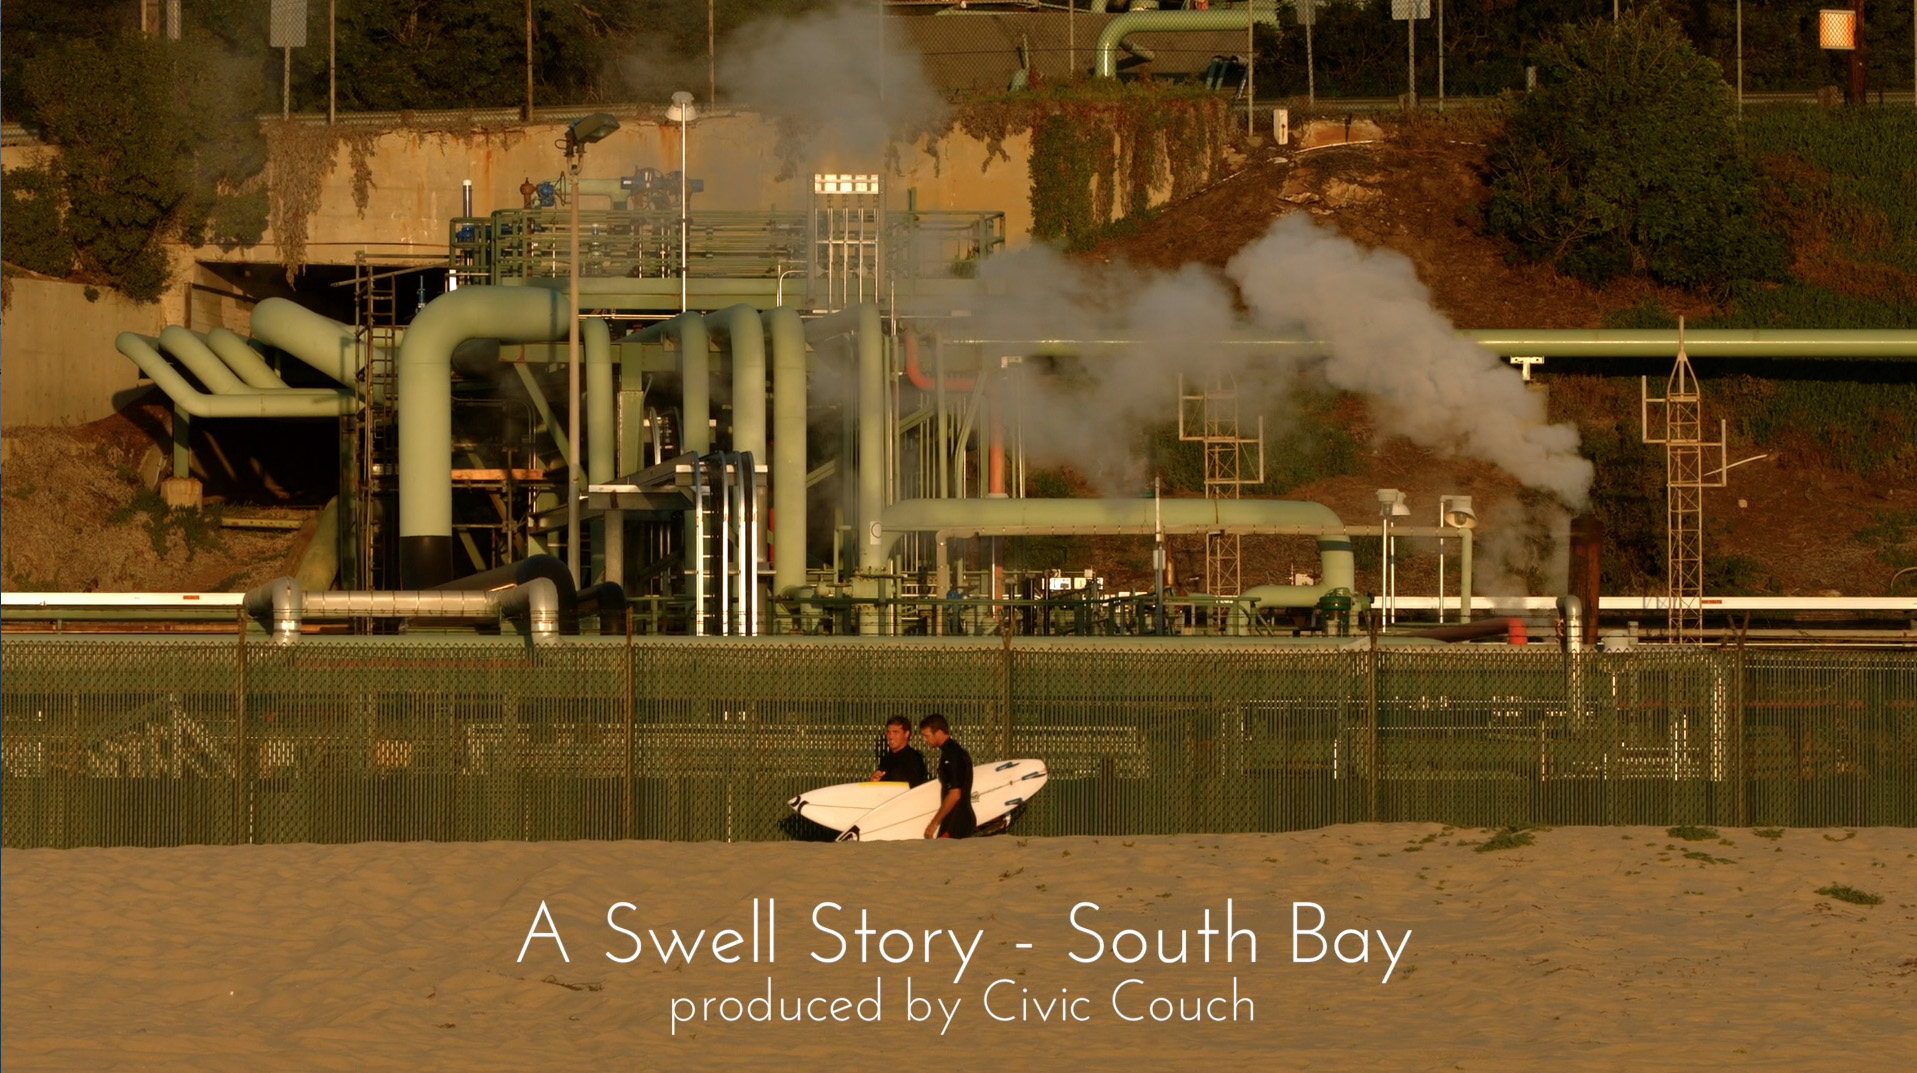 A South Bay Swell Story